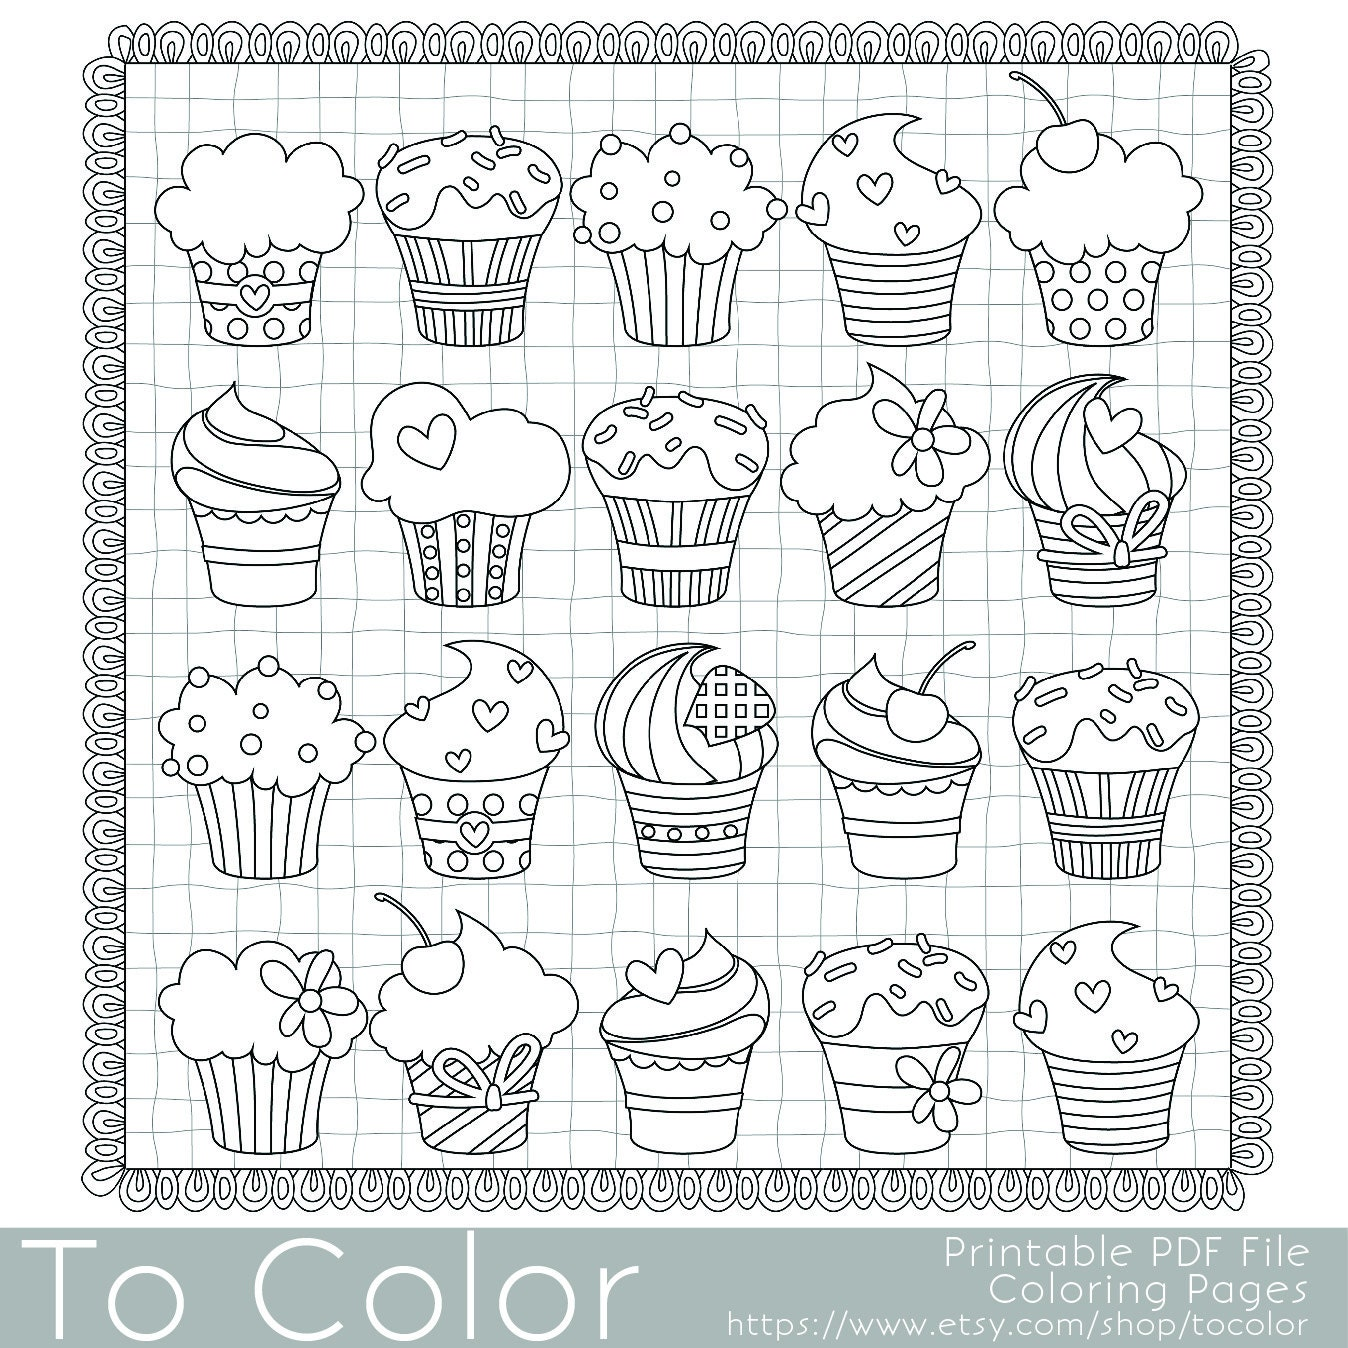 Cupcakes Coloring Page for Adults PDF / JPG Instant